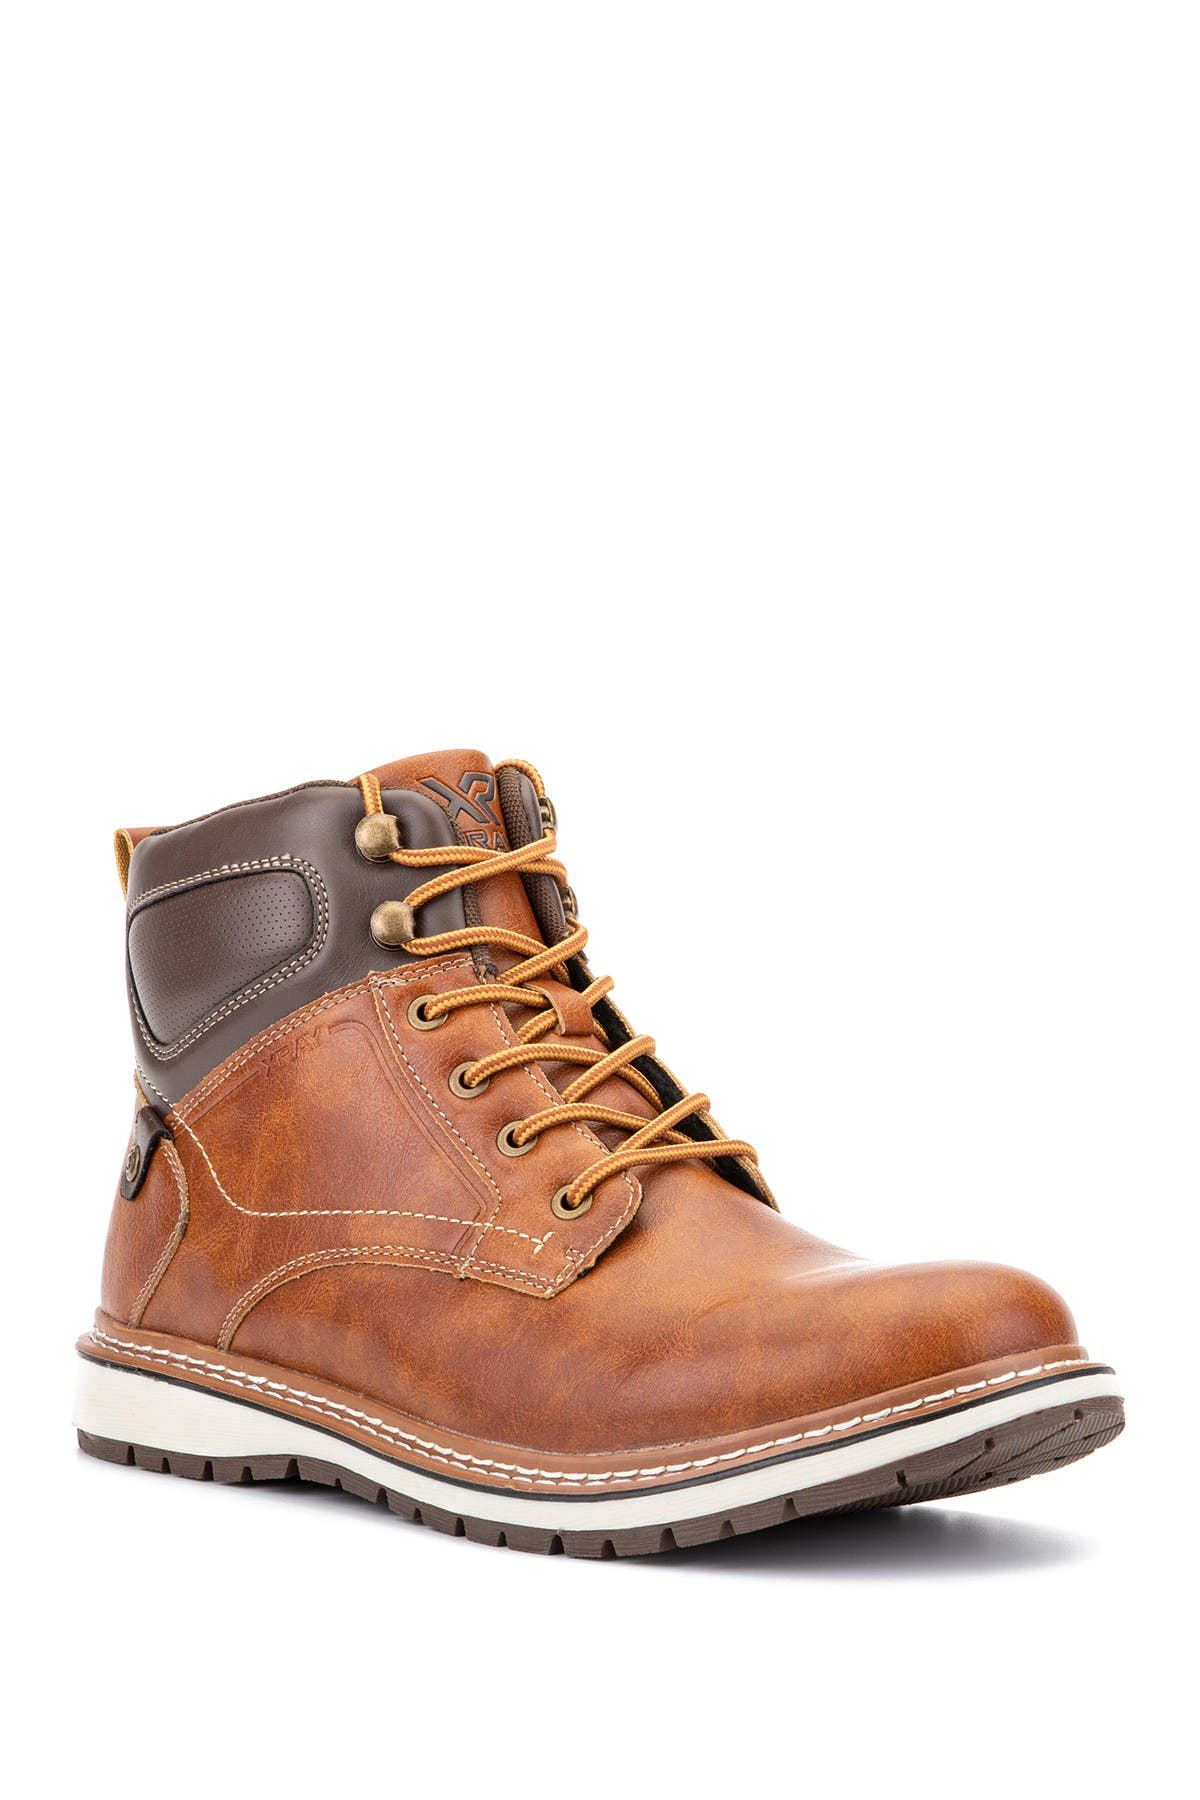 Image of XRAY Carter Lace-Up Boot